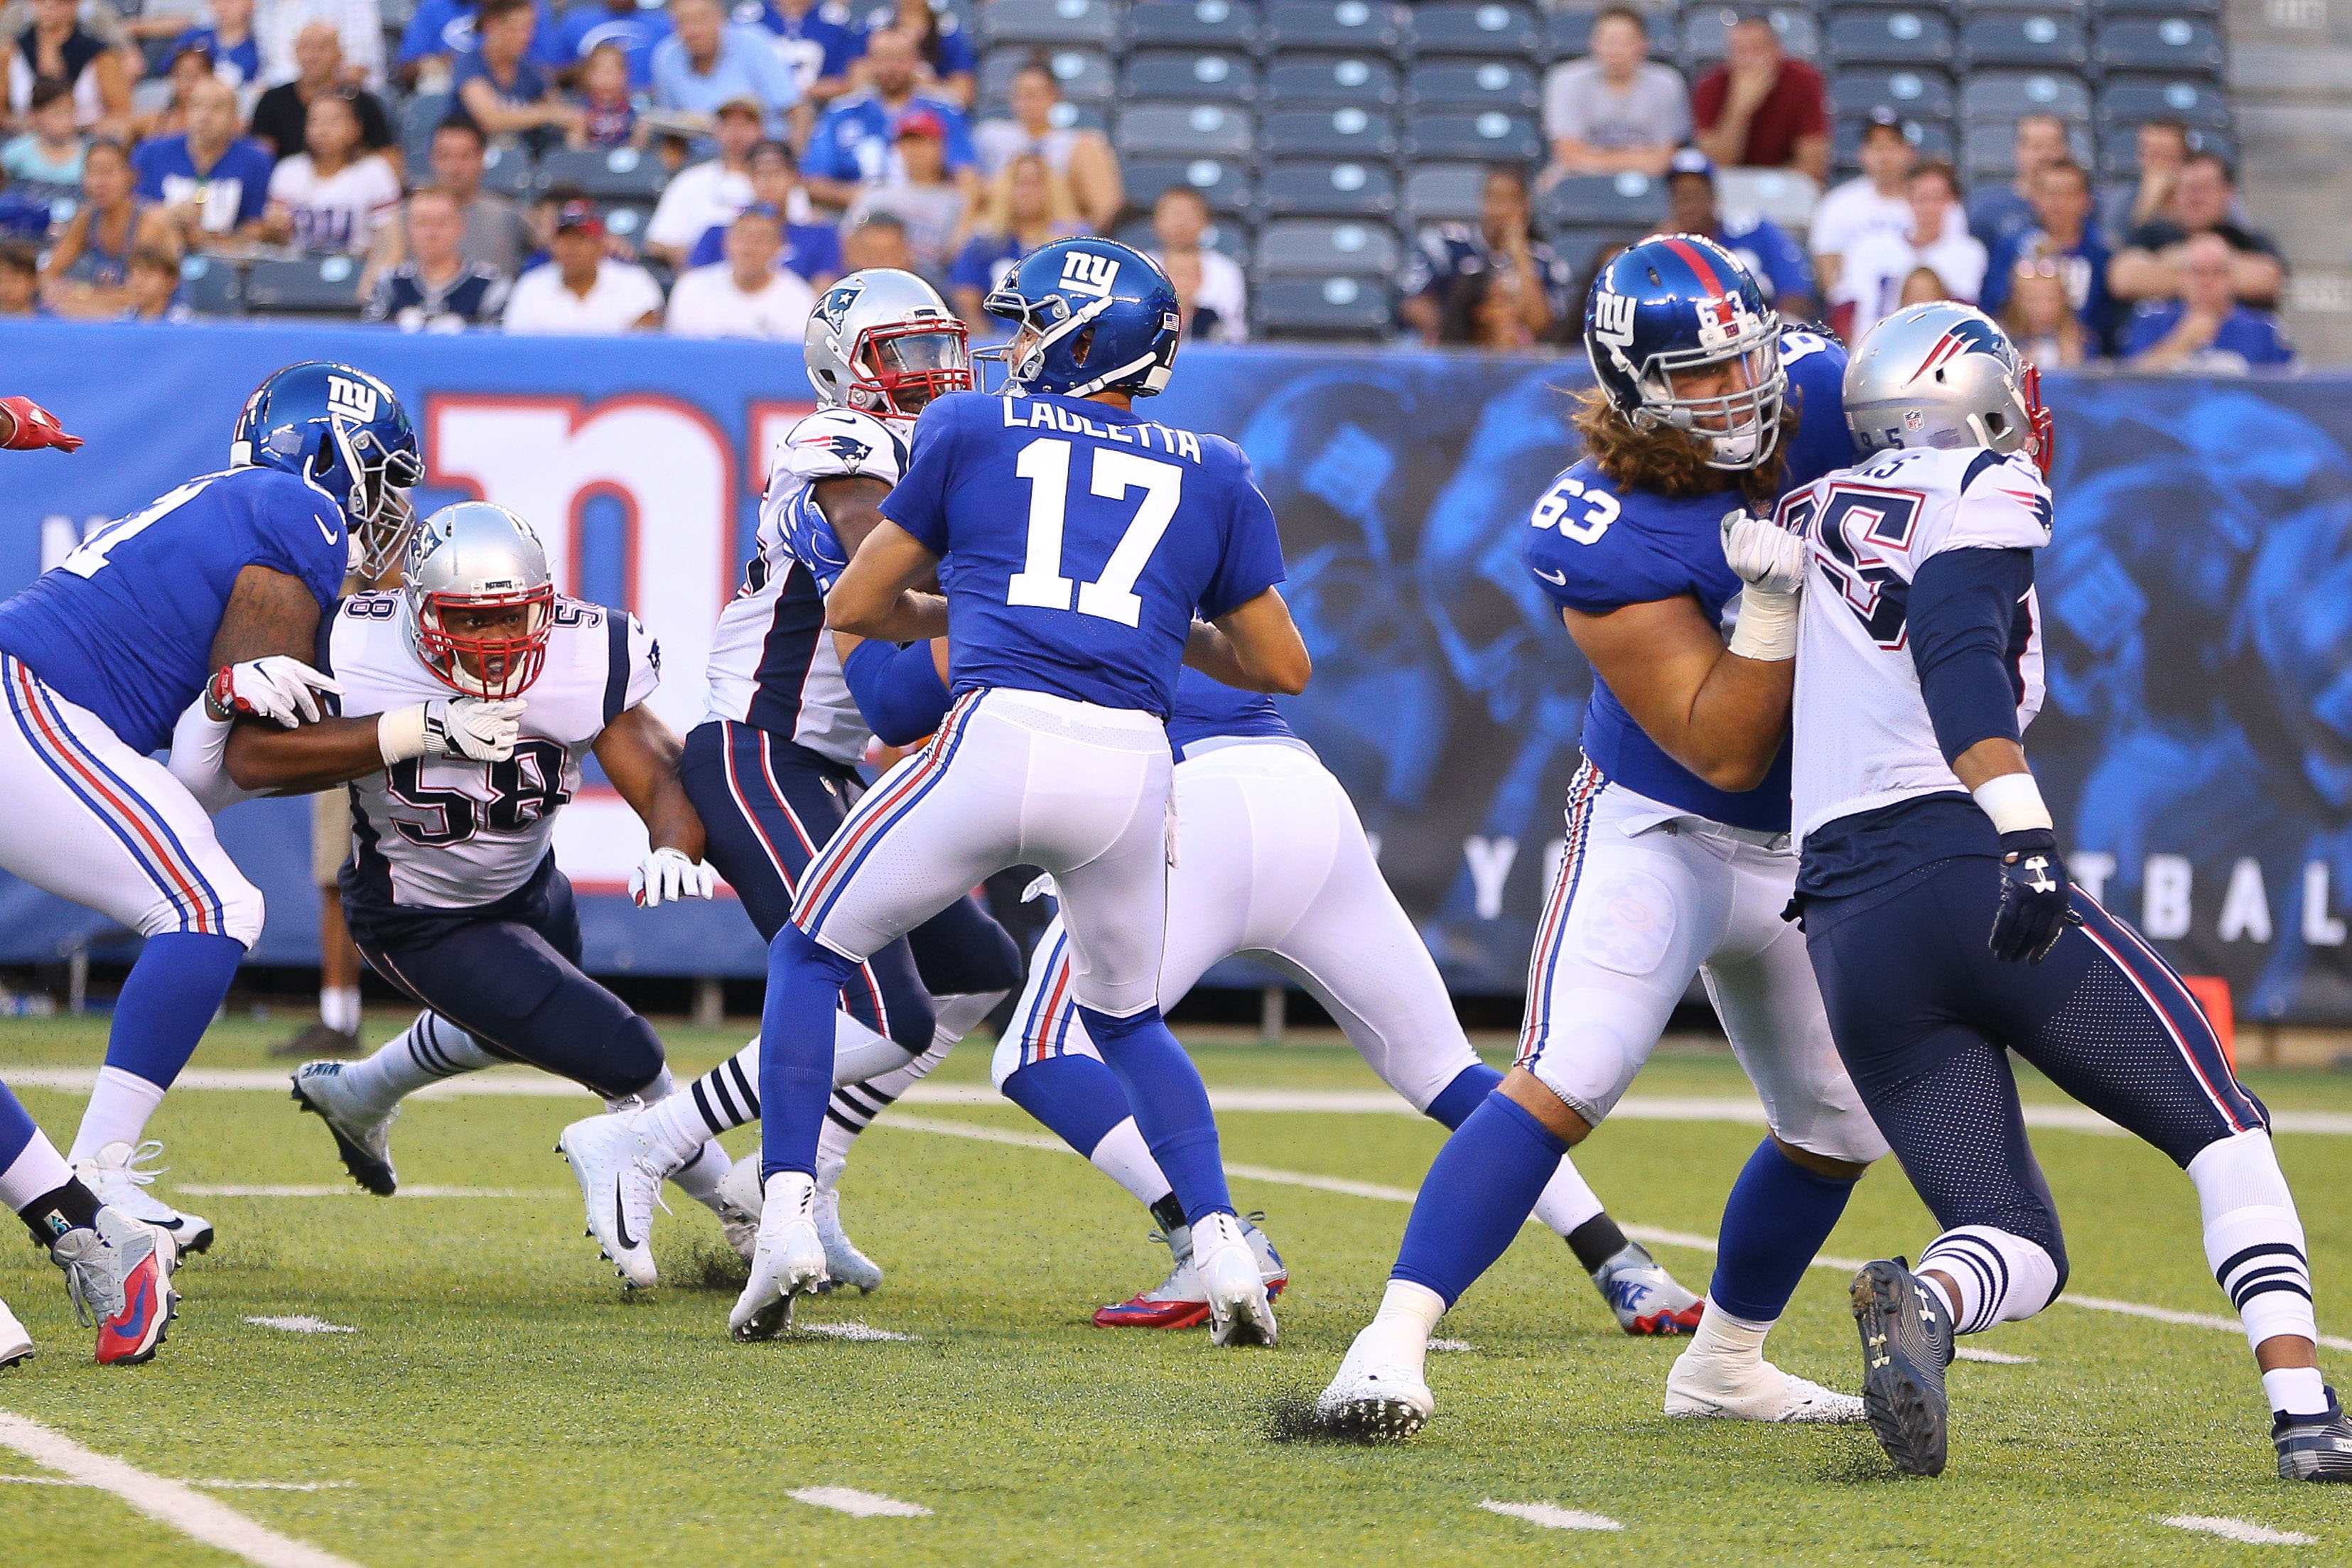 NFL: New England Patriots at New York Giants